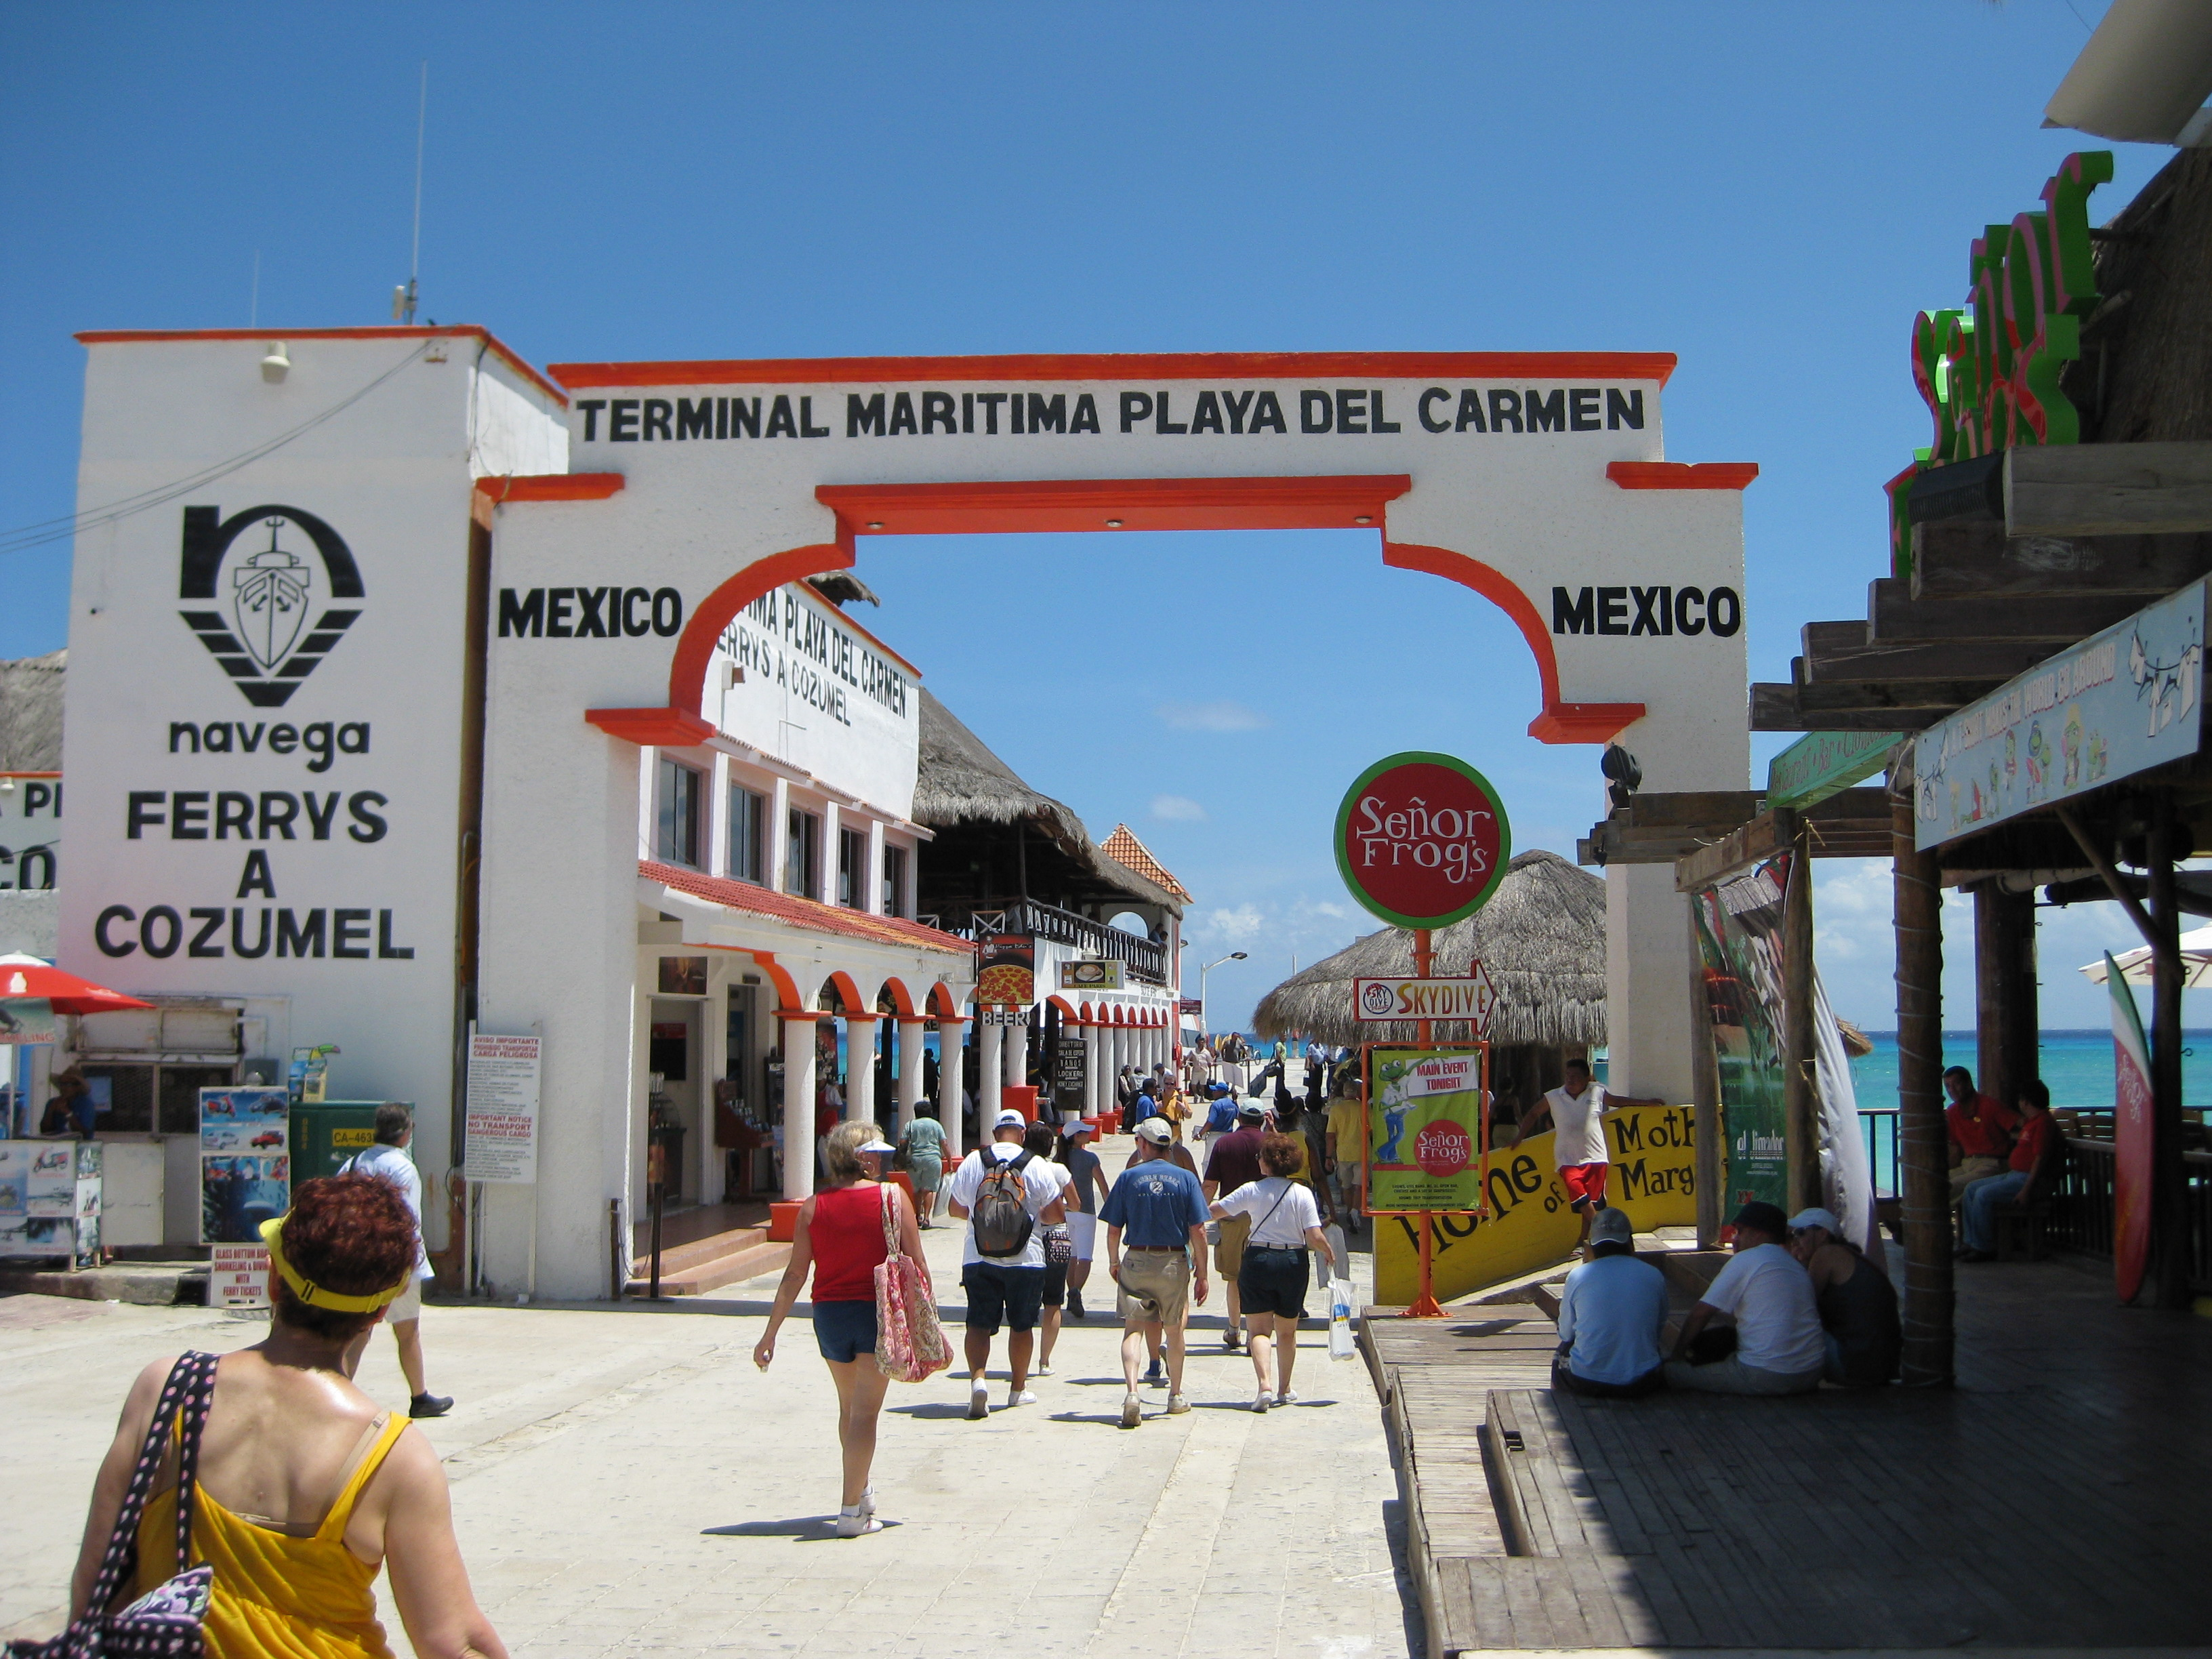 ... Relax and Enjoy These Breathtaking Photos of Playa del Carmen, Mexico